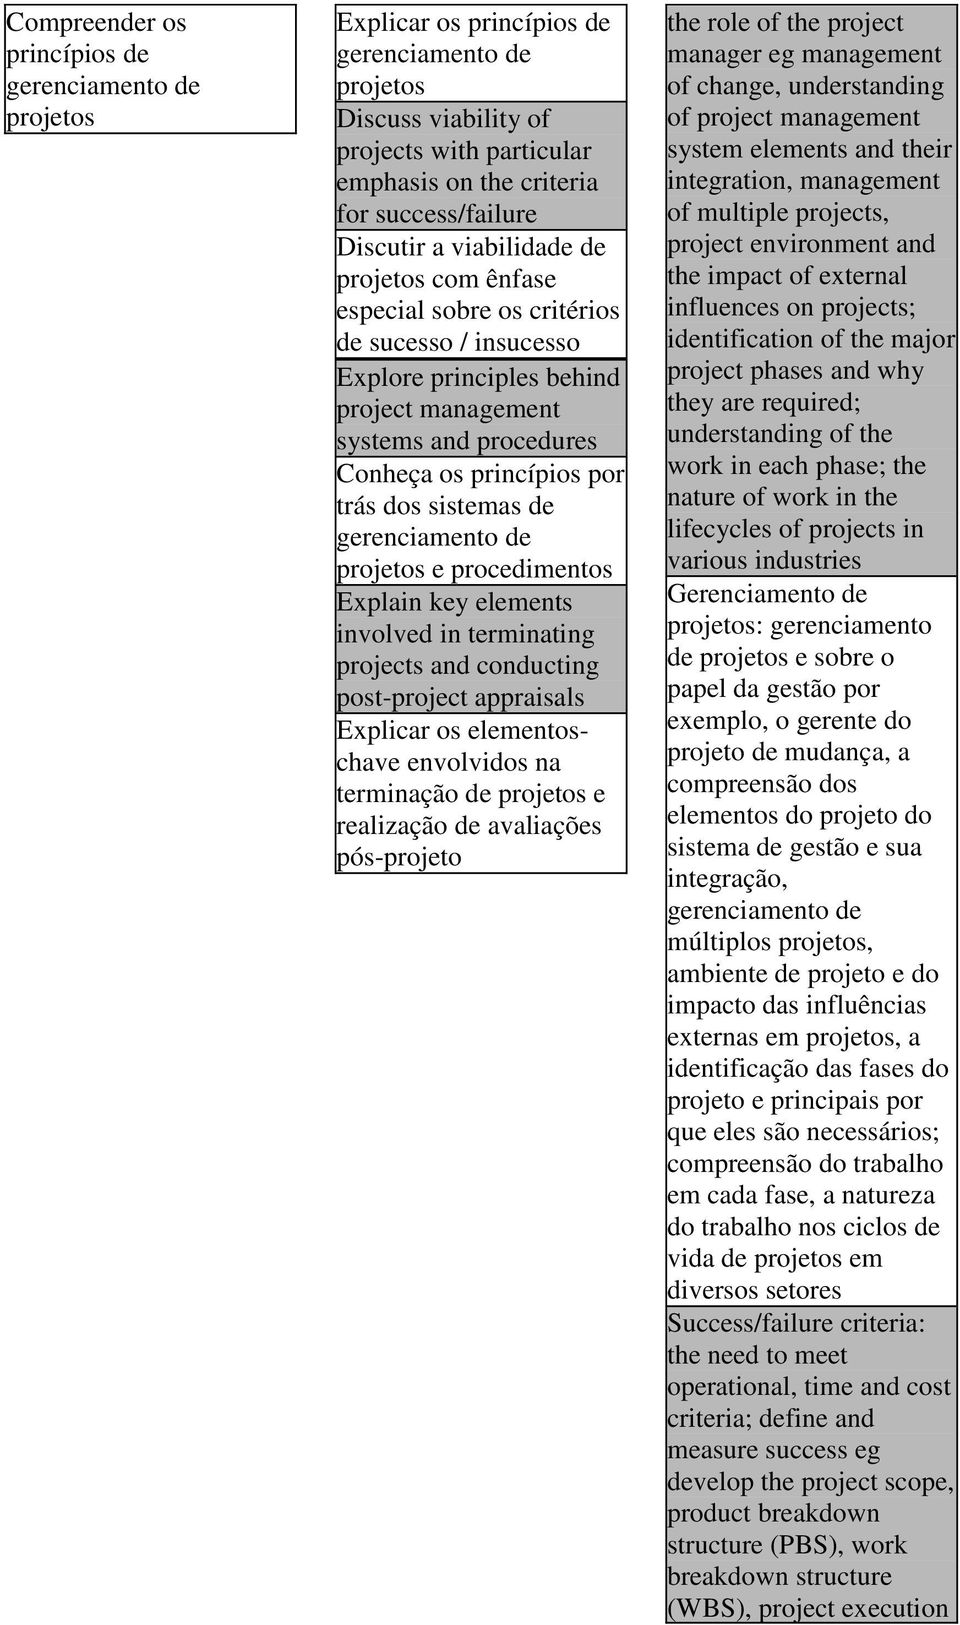 sistemas de gerenciamento de projetos e procedimentos Explain key elements involved in terminating projects and conducting post-project appraisals Explicar os elementoschave envolvidos na terminação